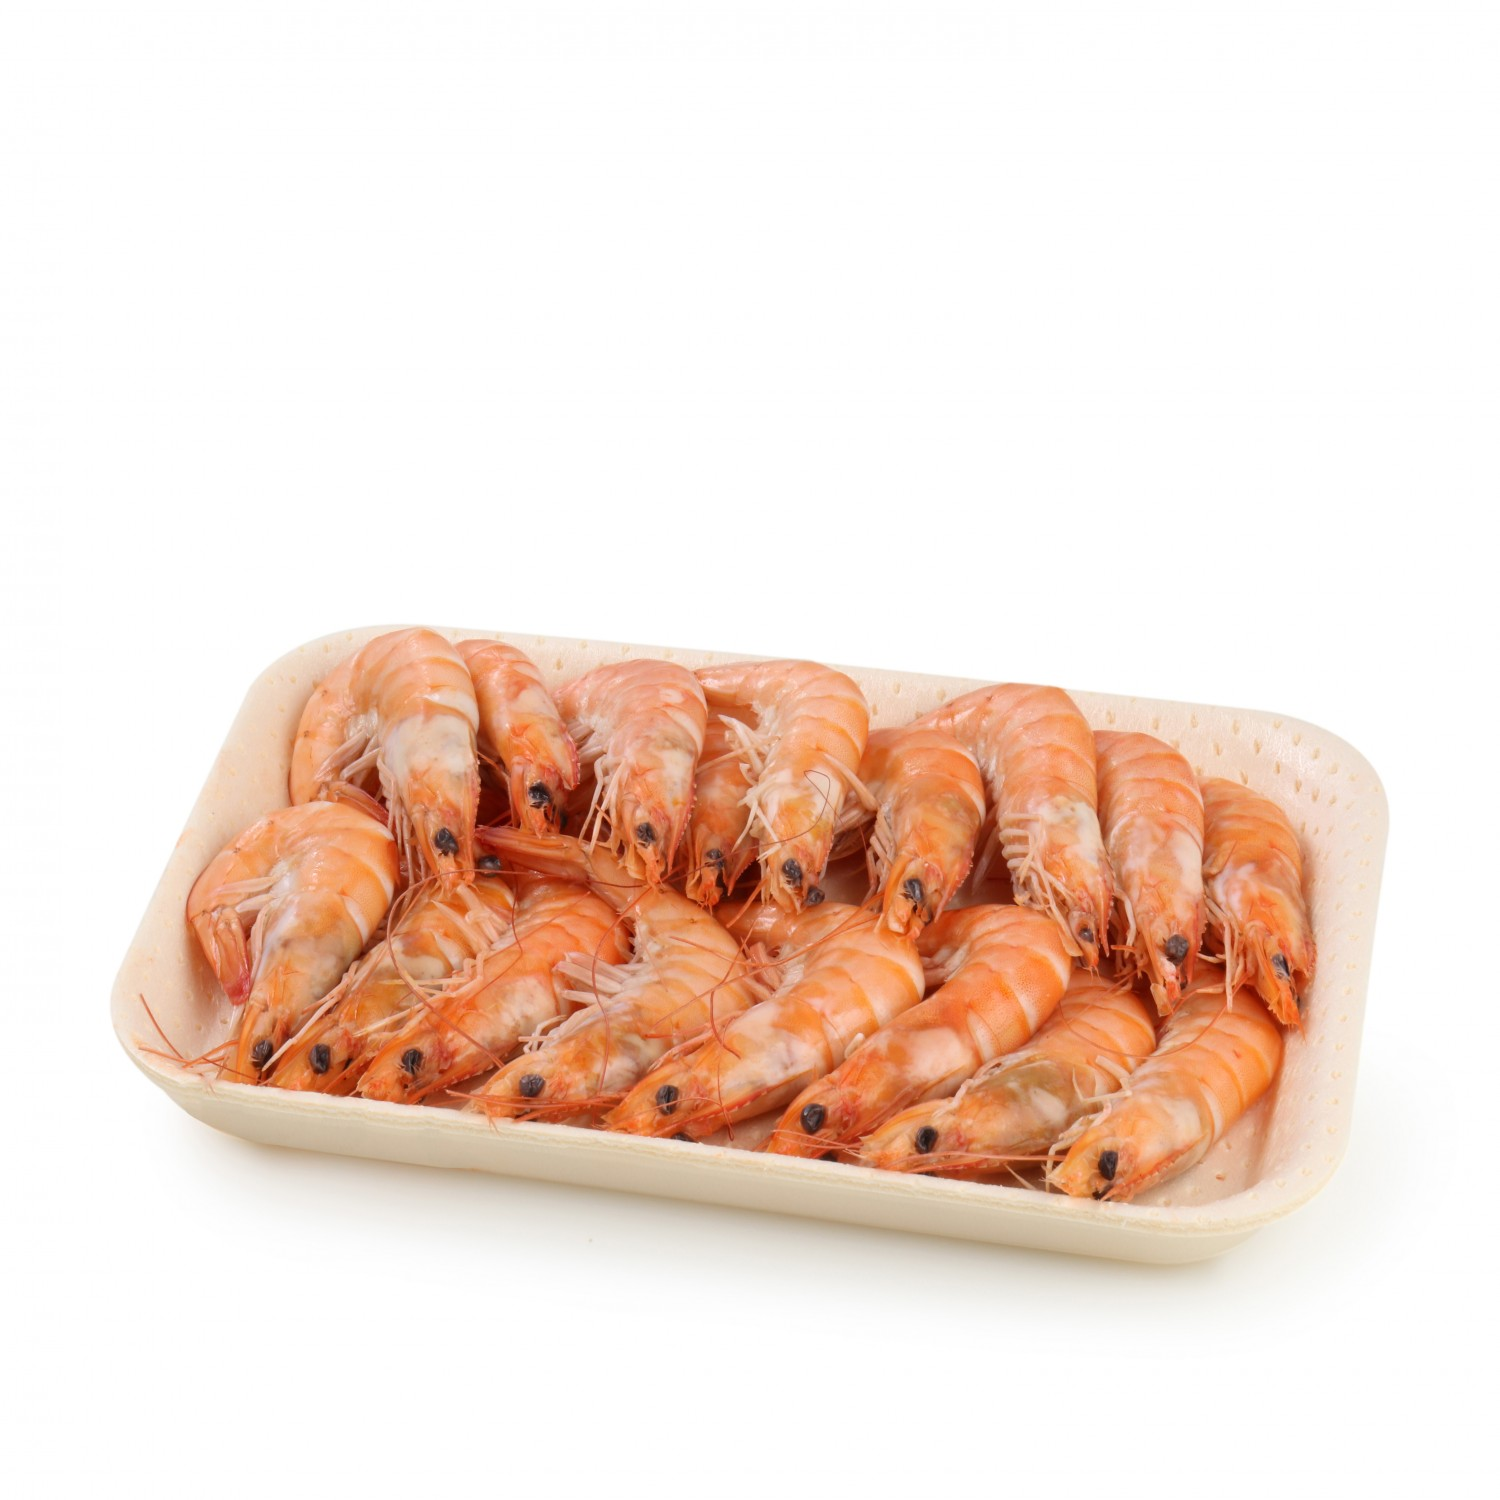 Langostino cocido Carrefour (30/40 ud) 500 g aprox - 2